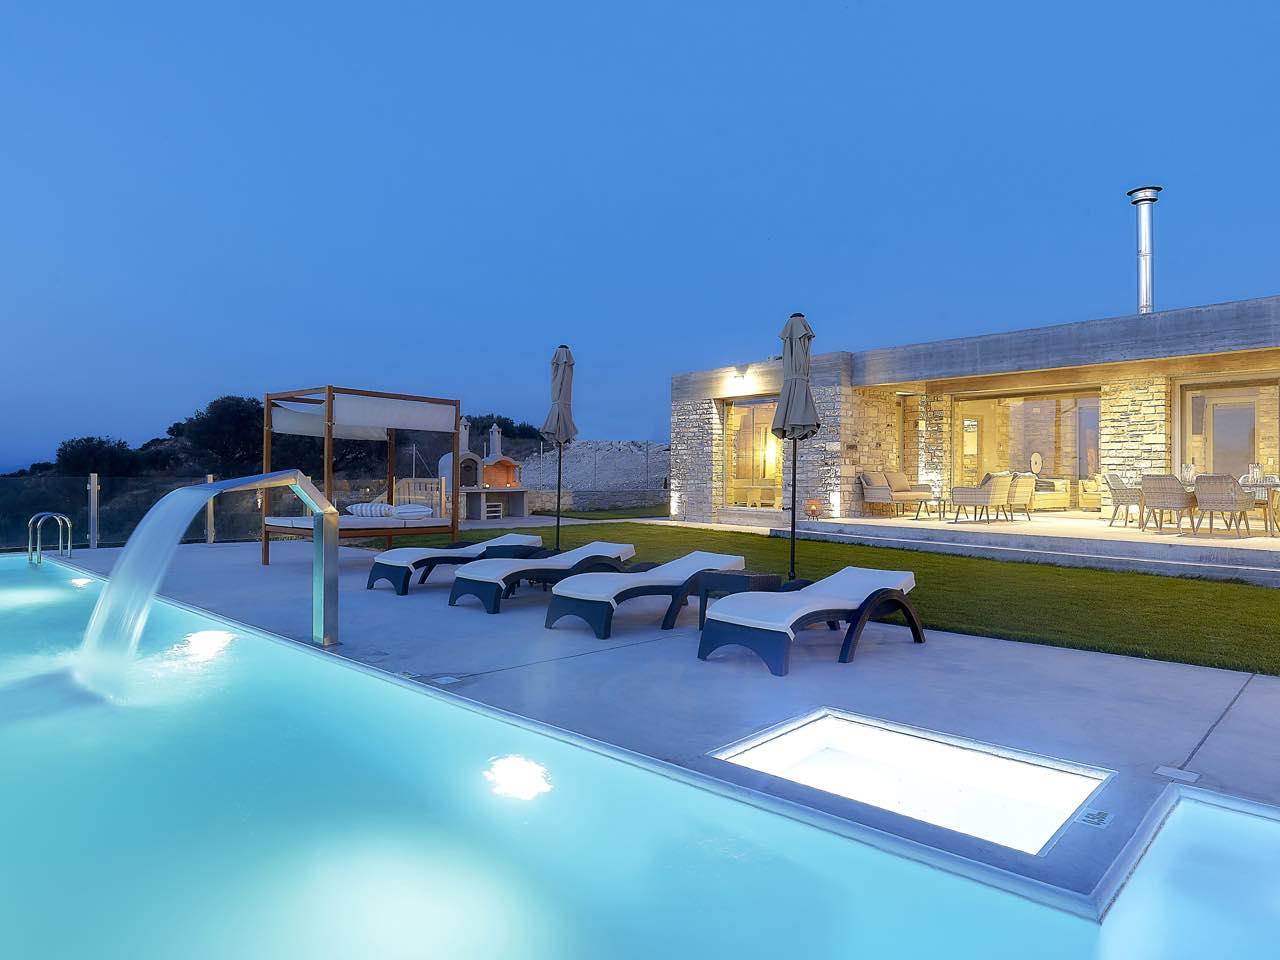 We Welcome Kouros n' Kori Villas At Kamilari Village-Crete